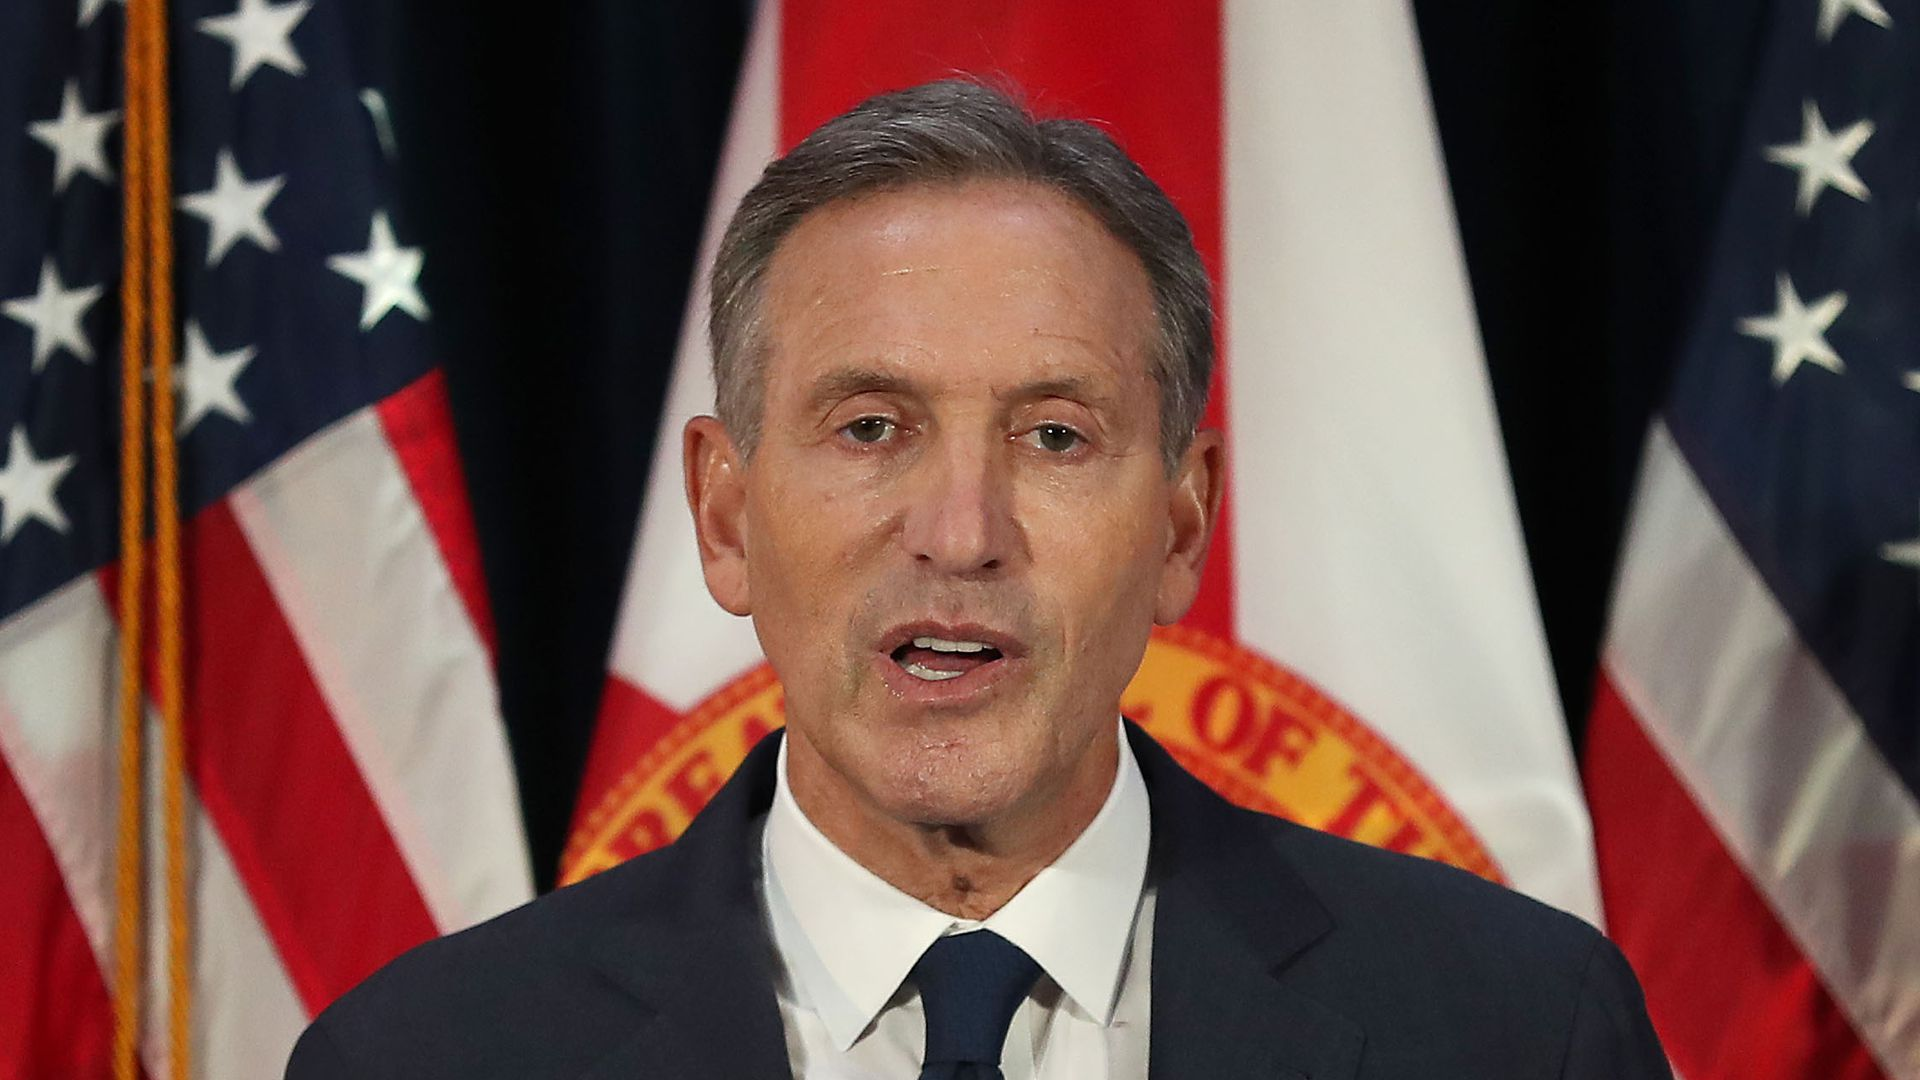 Howard Schultz says both parties should work together on legislation.